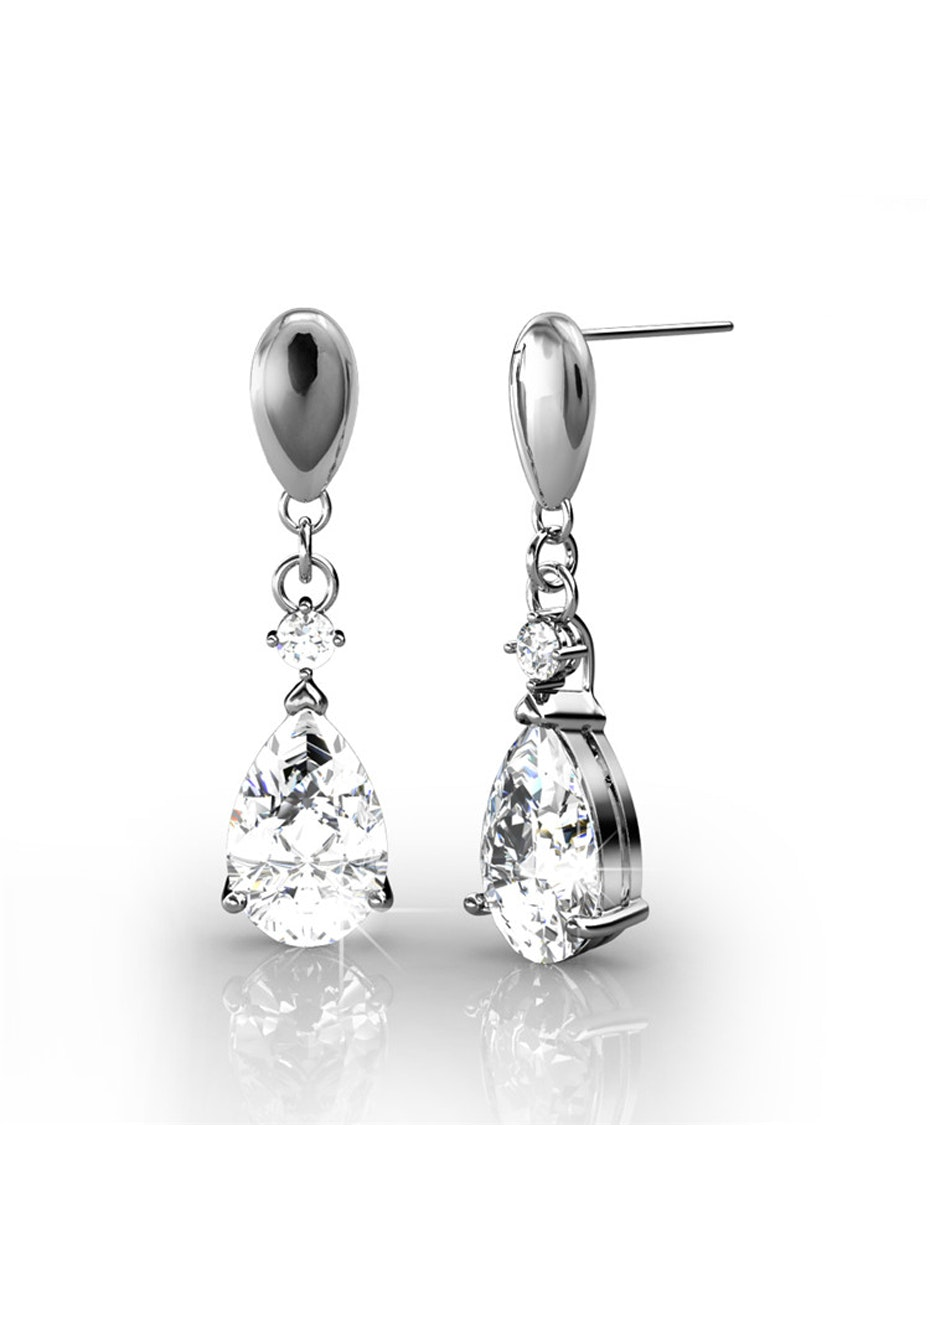 Monaco Drop Earrings Embellished with Crystals from Swarovski